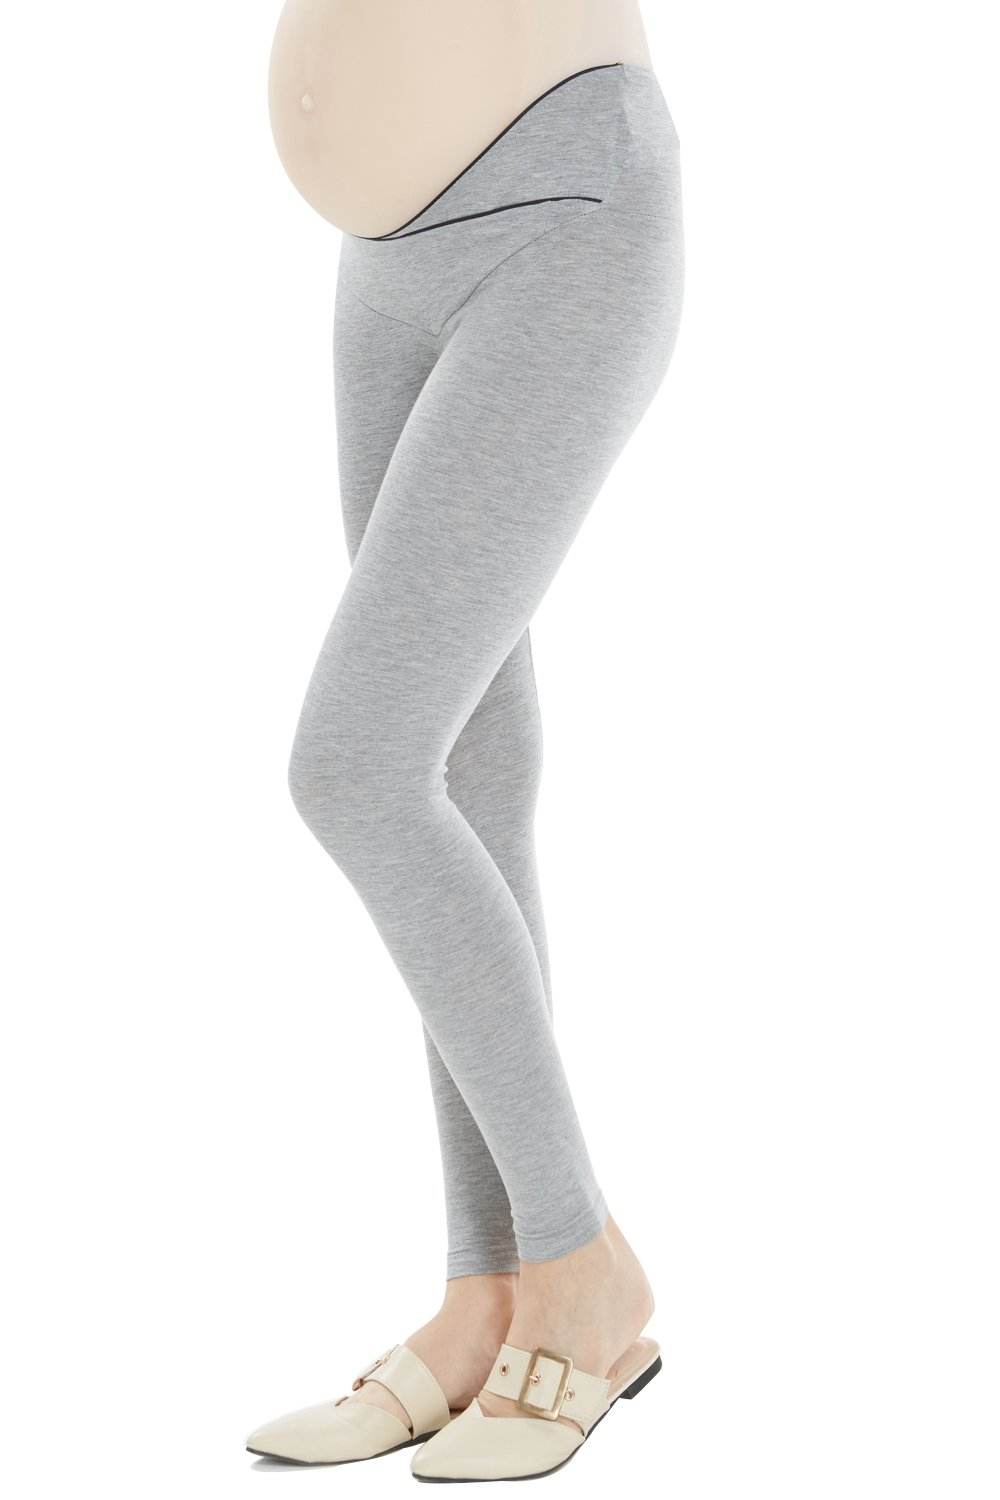 Cozyonme Maternity Pants Leggings Pregnancy Support Jeggings Capris Yoga Tights (Grey, XX-Large) by Cozyonme (Image #2)